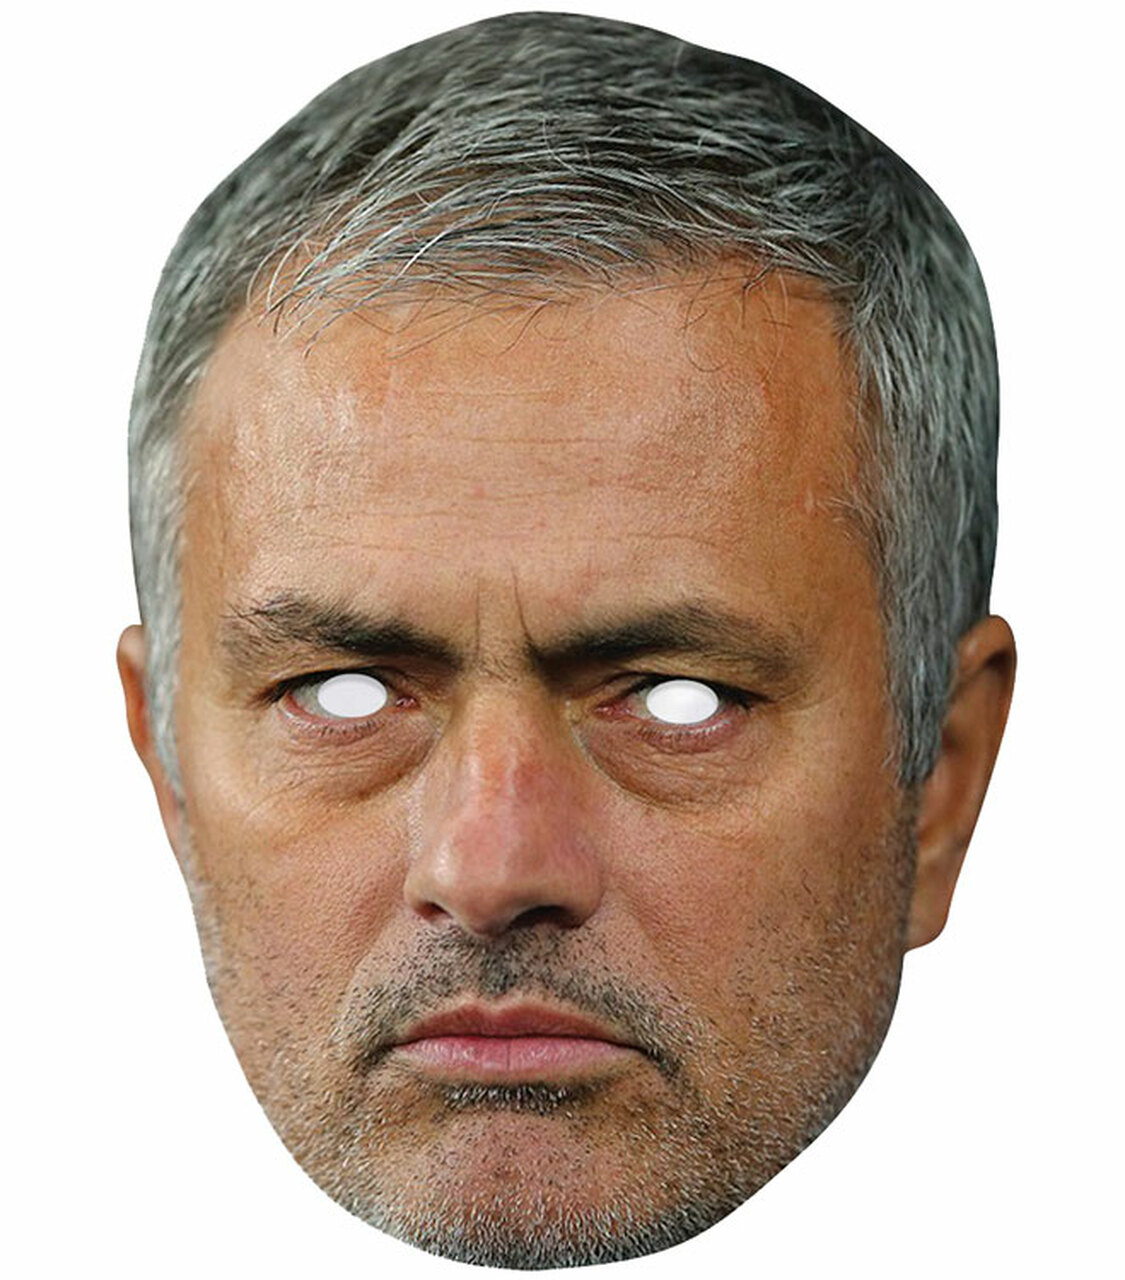 Gareth Southgate Celebrity Card Football Manager Mask All Masks Are Pre-Cut